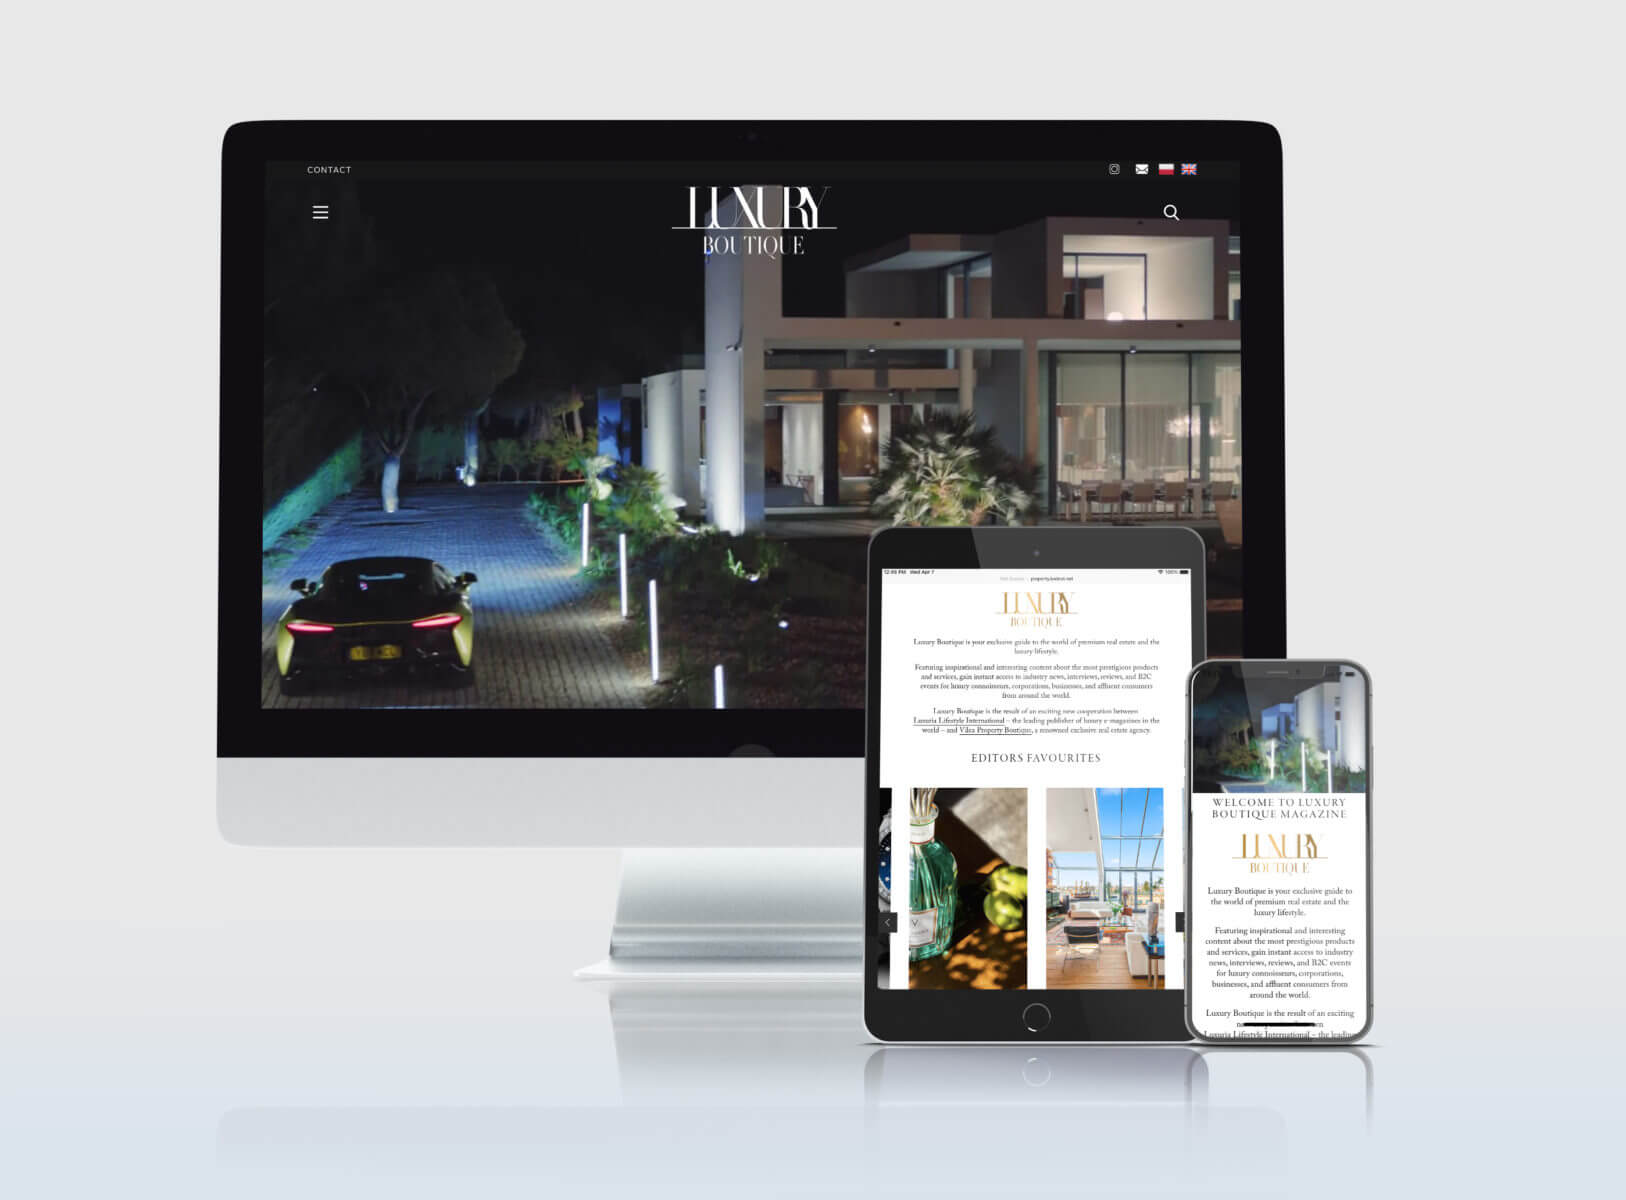 LUXURIA DESIGN CREATES THE NEW LUXURY BOUTIQUE WEBSITE AND E-MAGAZINE FOR LEADING POLISH BRAND